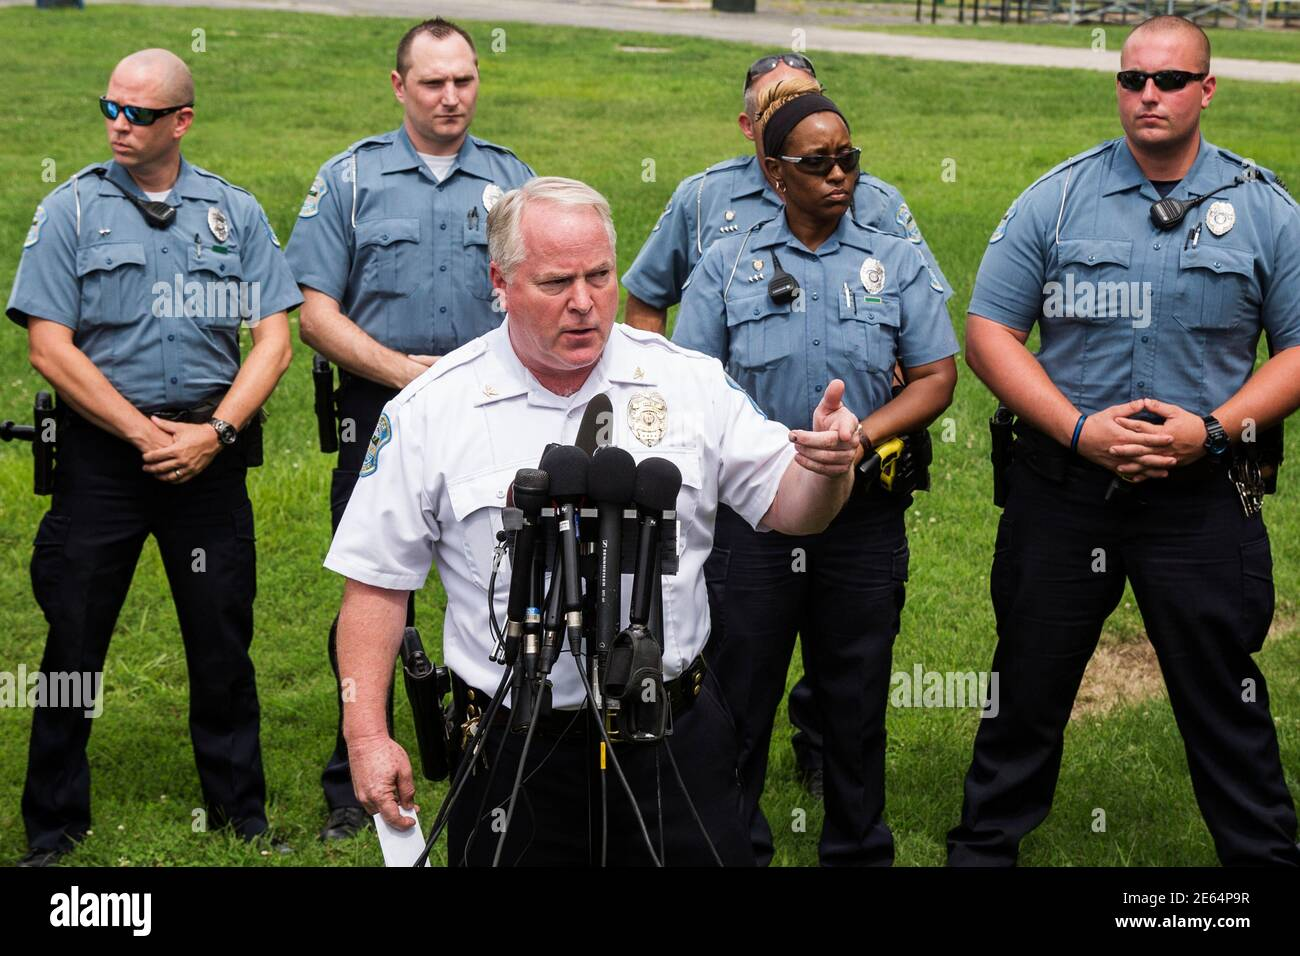 Ferguson Police Chief Thomas Jackson answers questions from the media about his office's handling of the release of information following the shooting of Michael Brown in Ferguson, Missouri August 15, 2014. Picture taken August 15, 2014. REUTERS/Lucas Jackson (UNITED STATES - Tags: CIVIL UNREST CRIME LAW POLITICS) Stock Photo